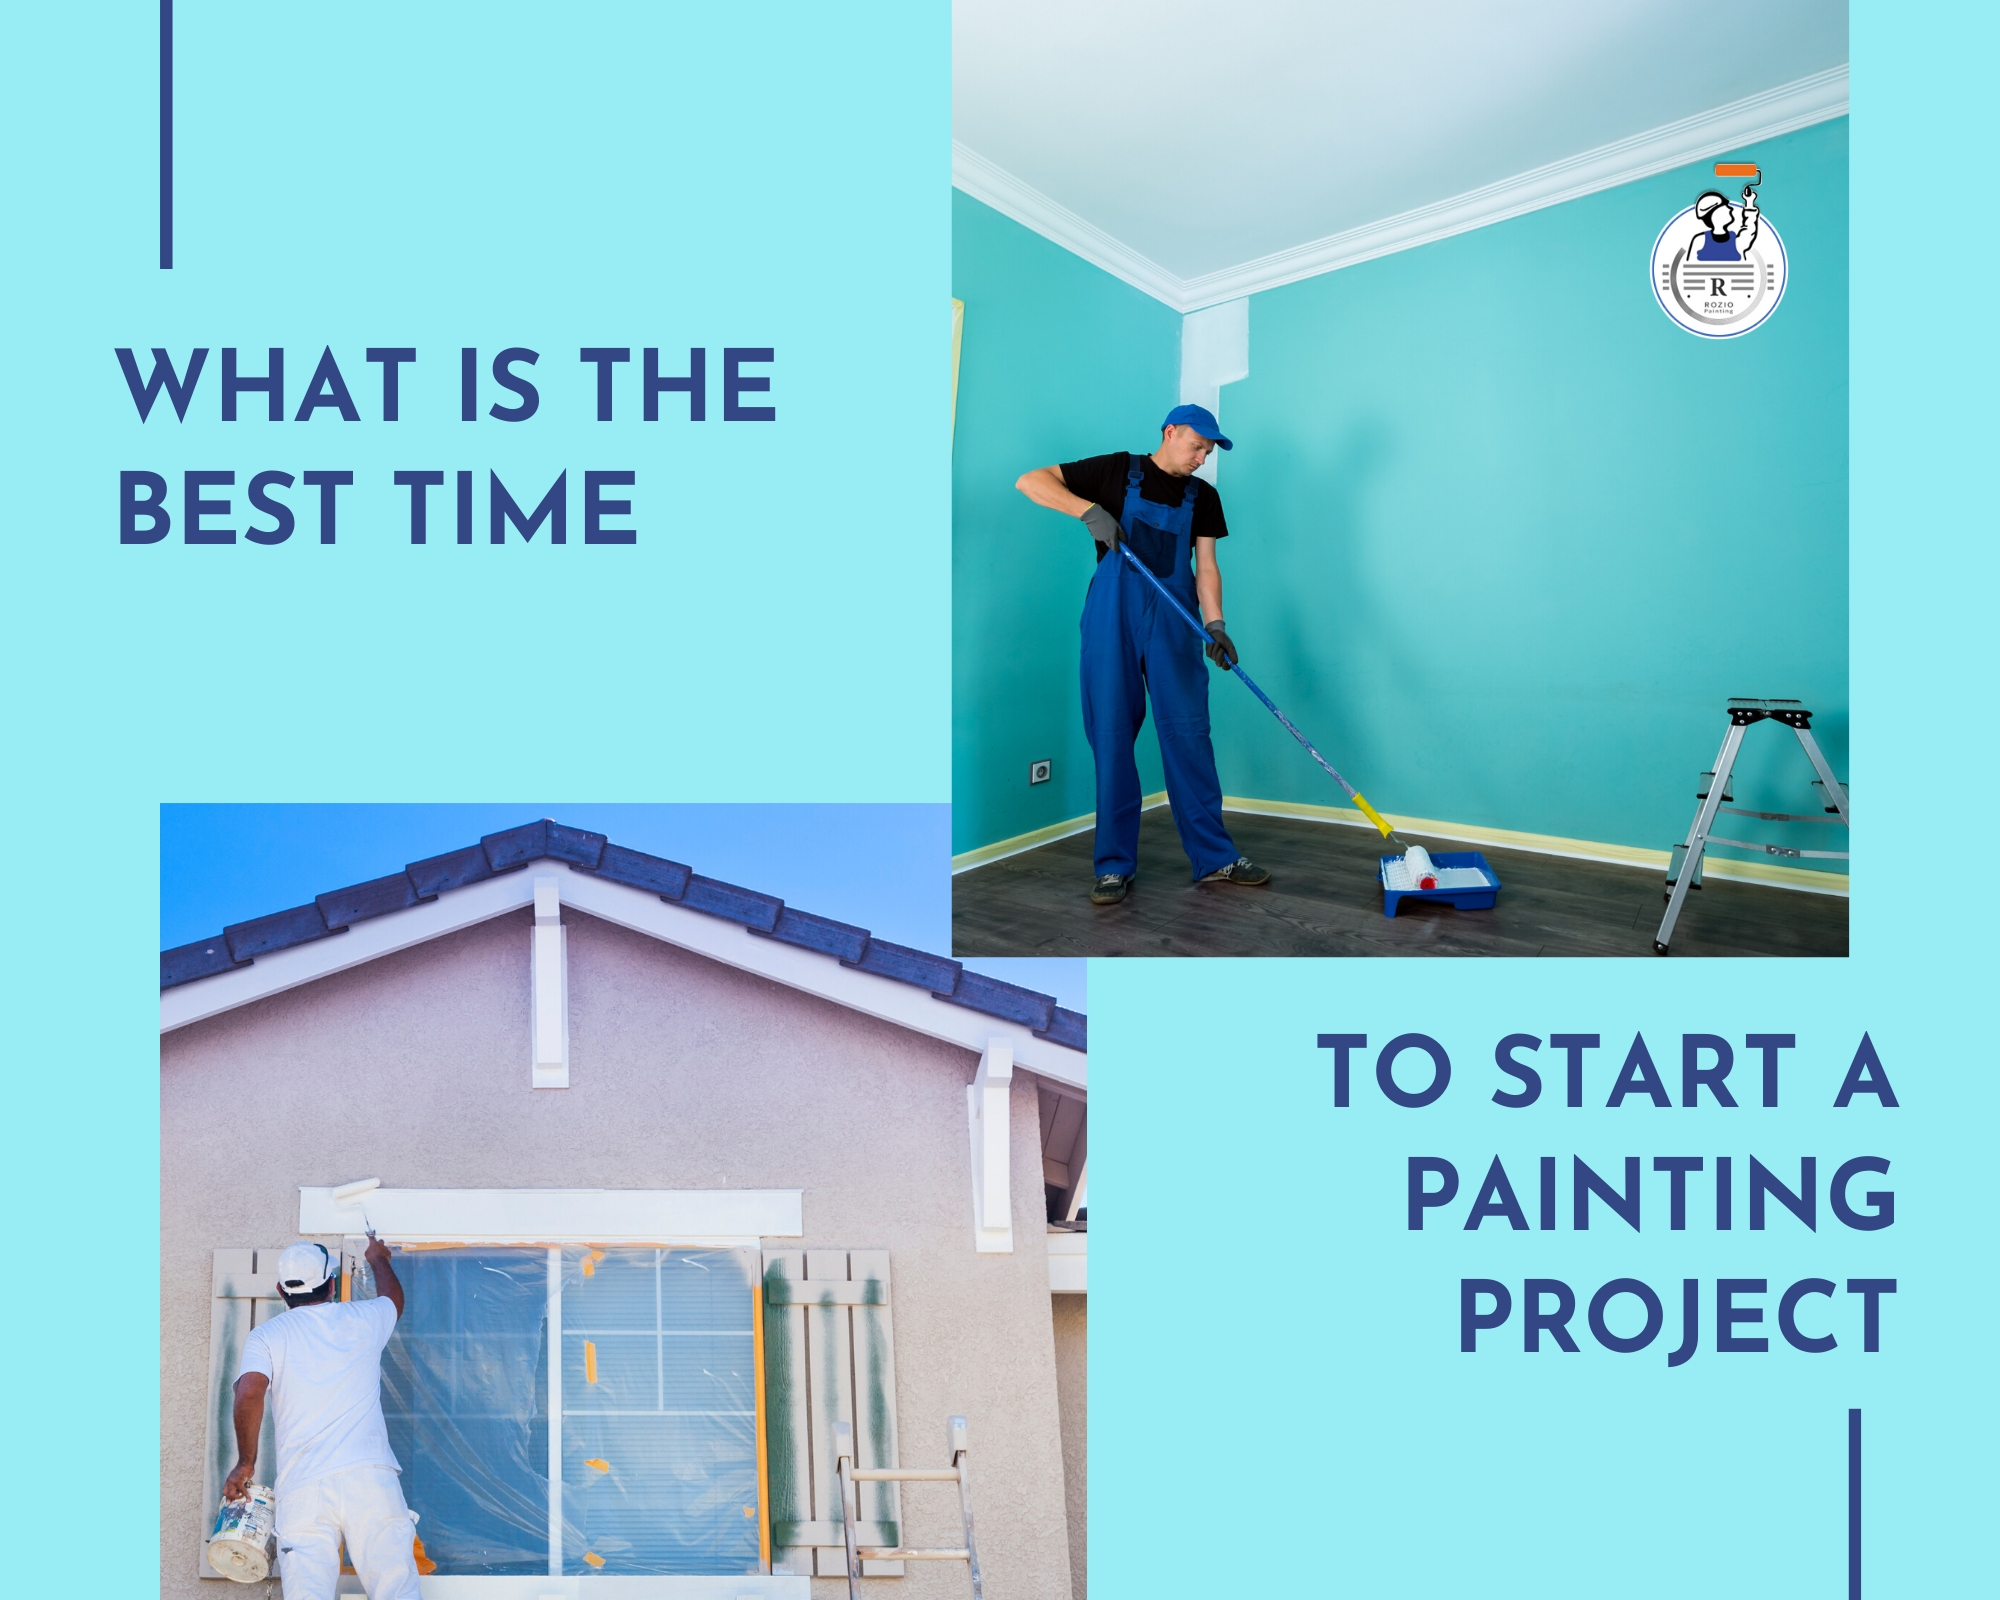 What is the best time to start a Painting project